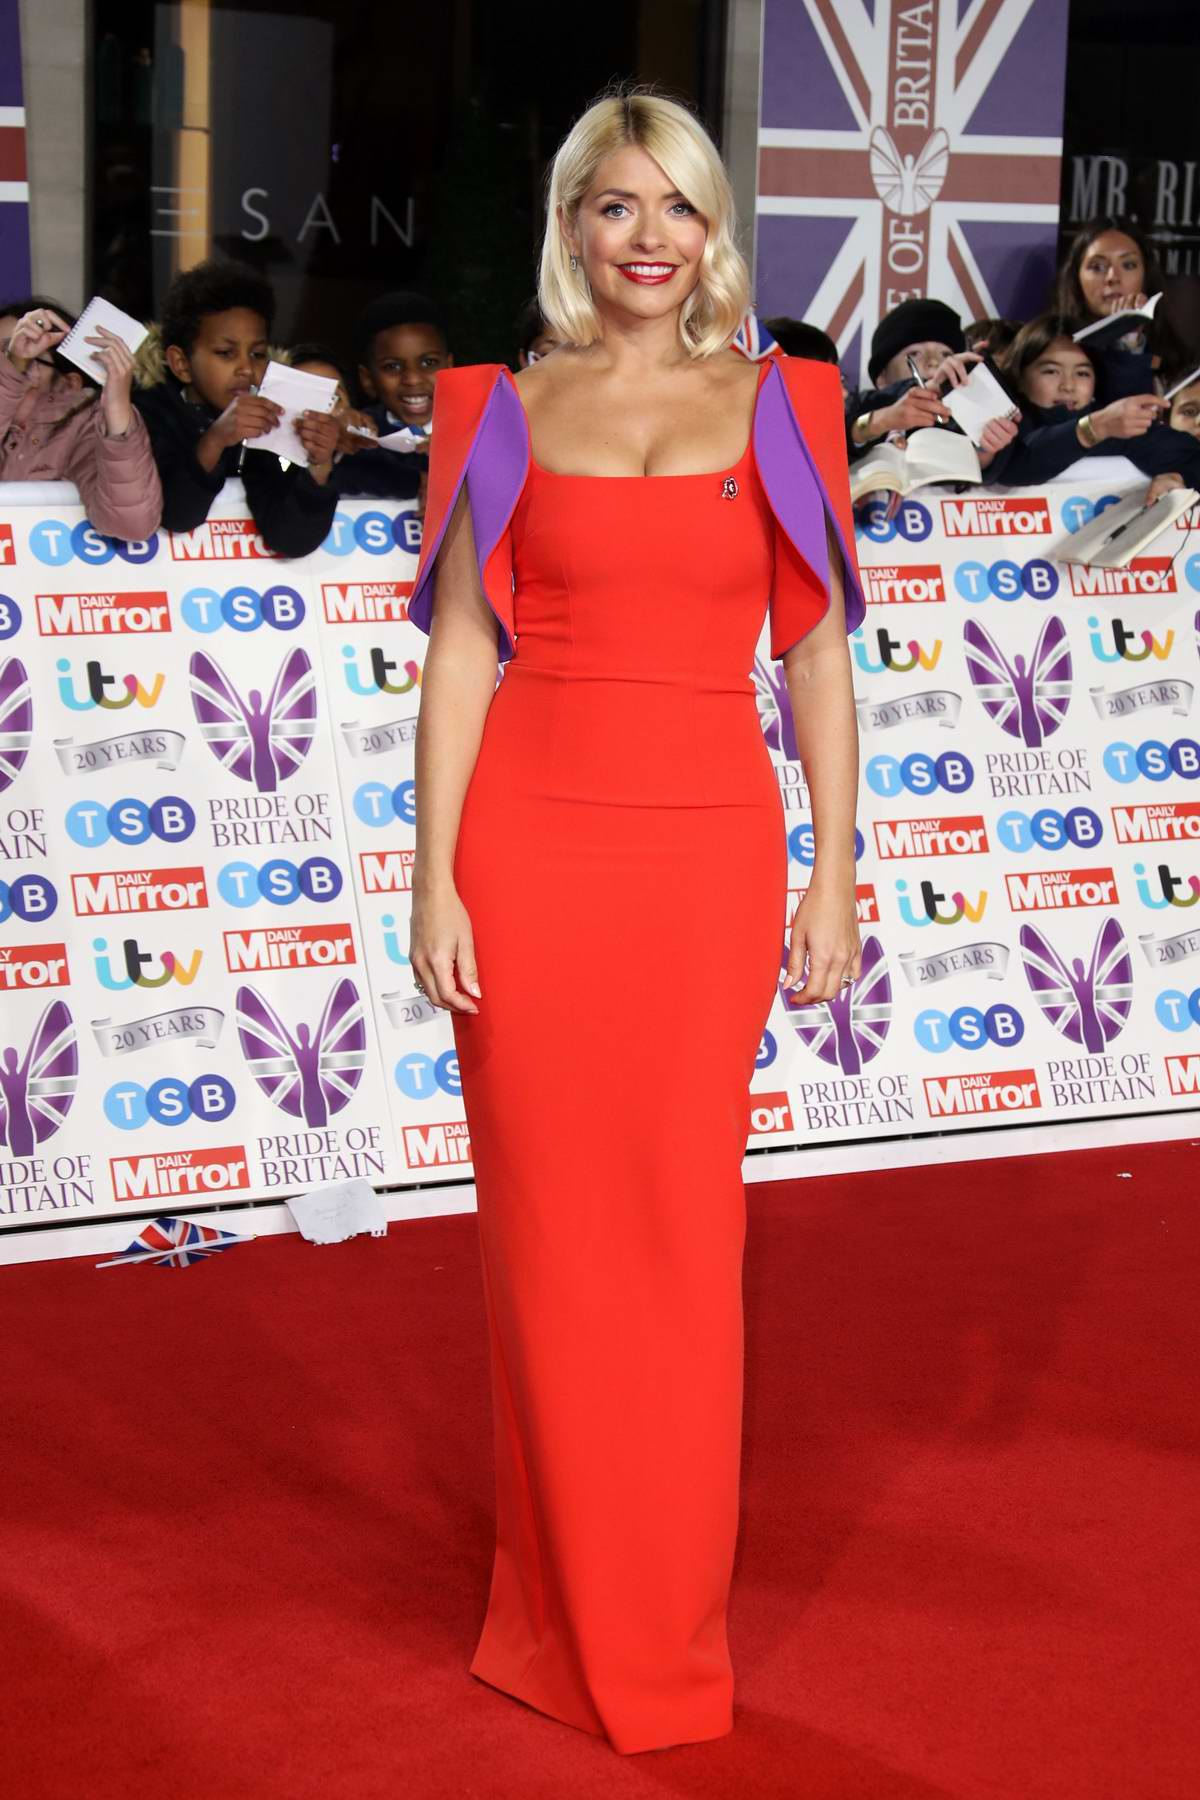 Holly Willoughby attends the Pride of Britain Awards 2019 at Grosvenor House in London, UK